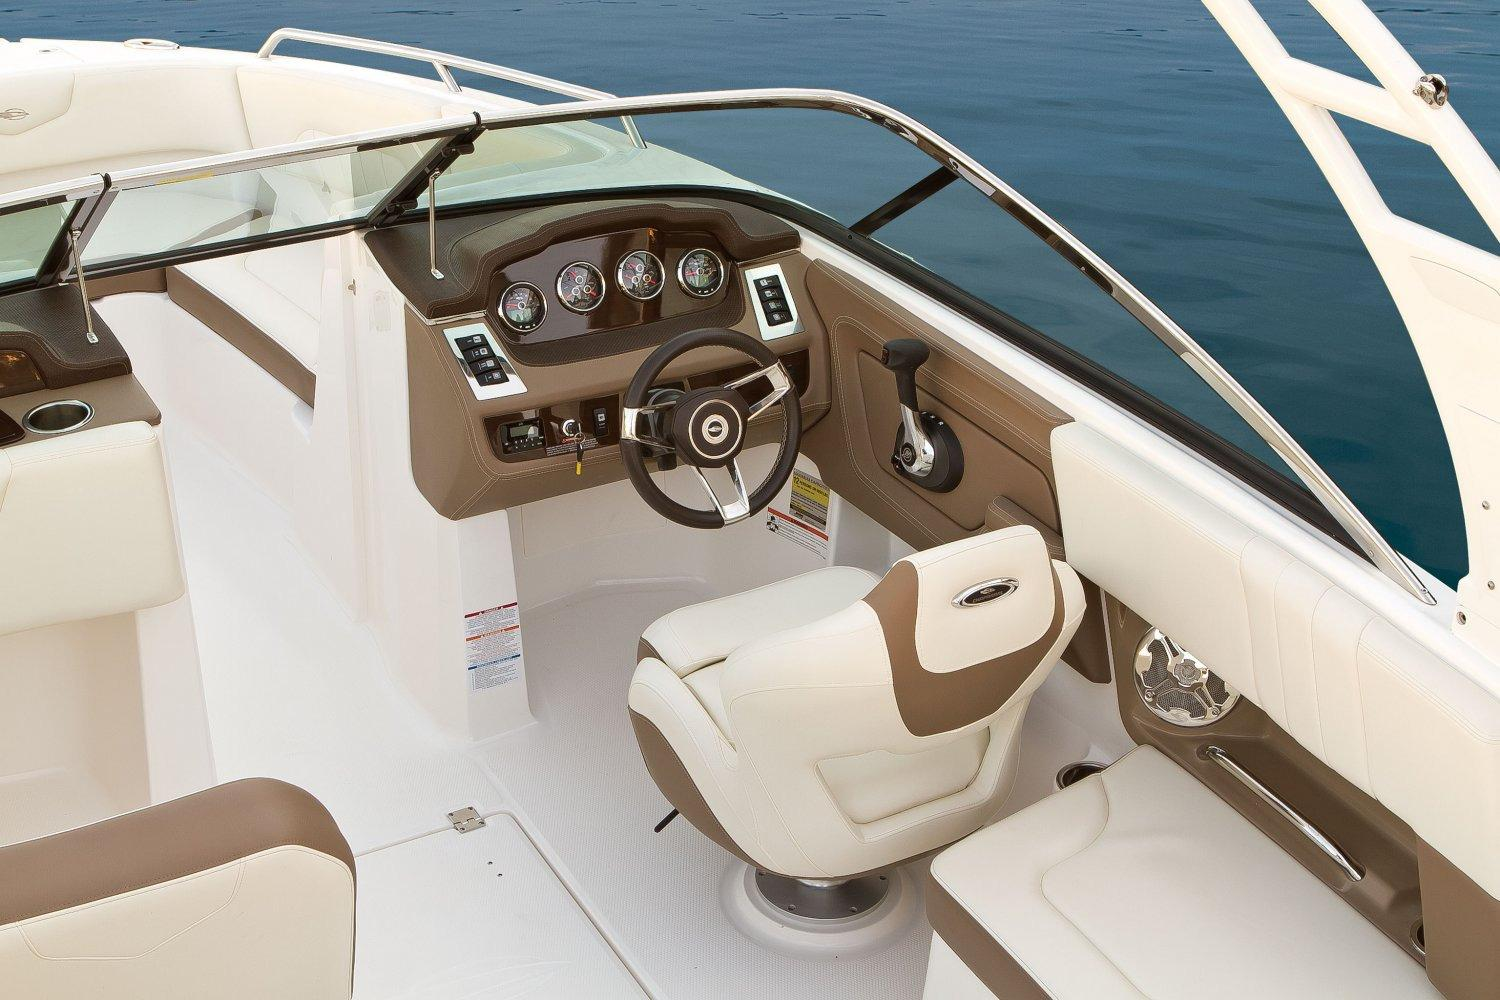 2017 Chaparral 227 SSX in Round Lake, Illinois